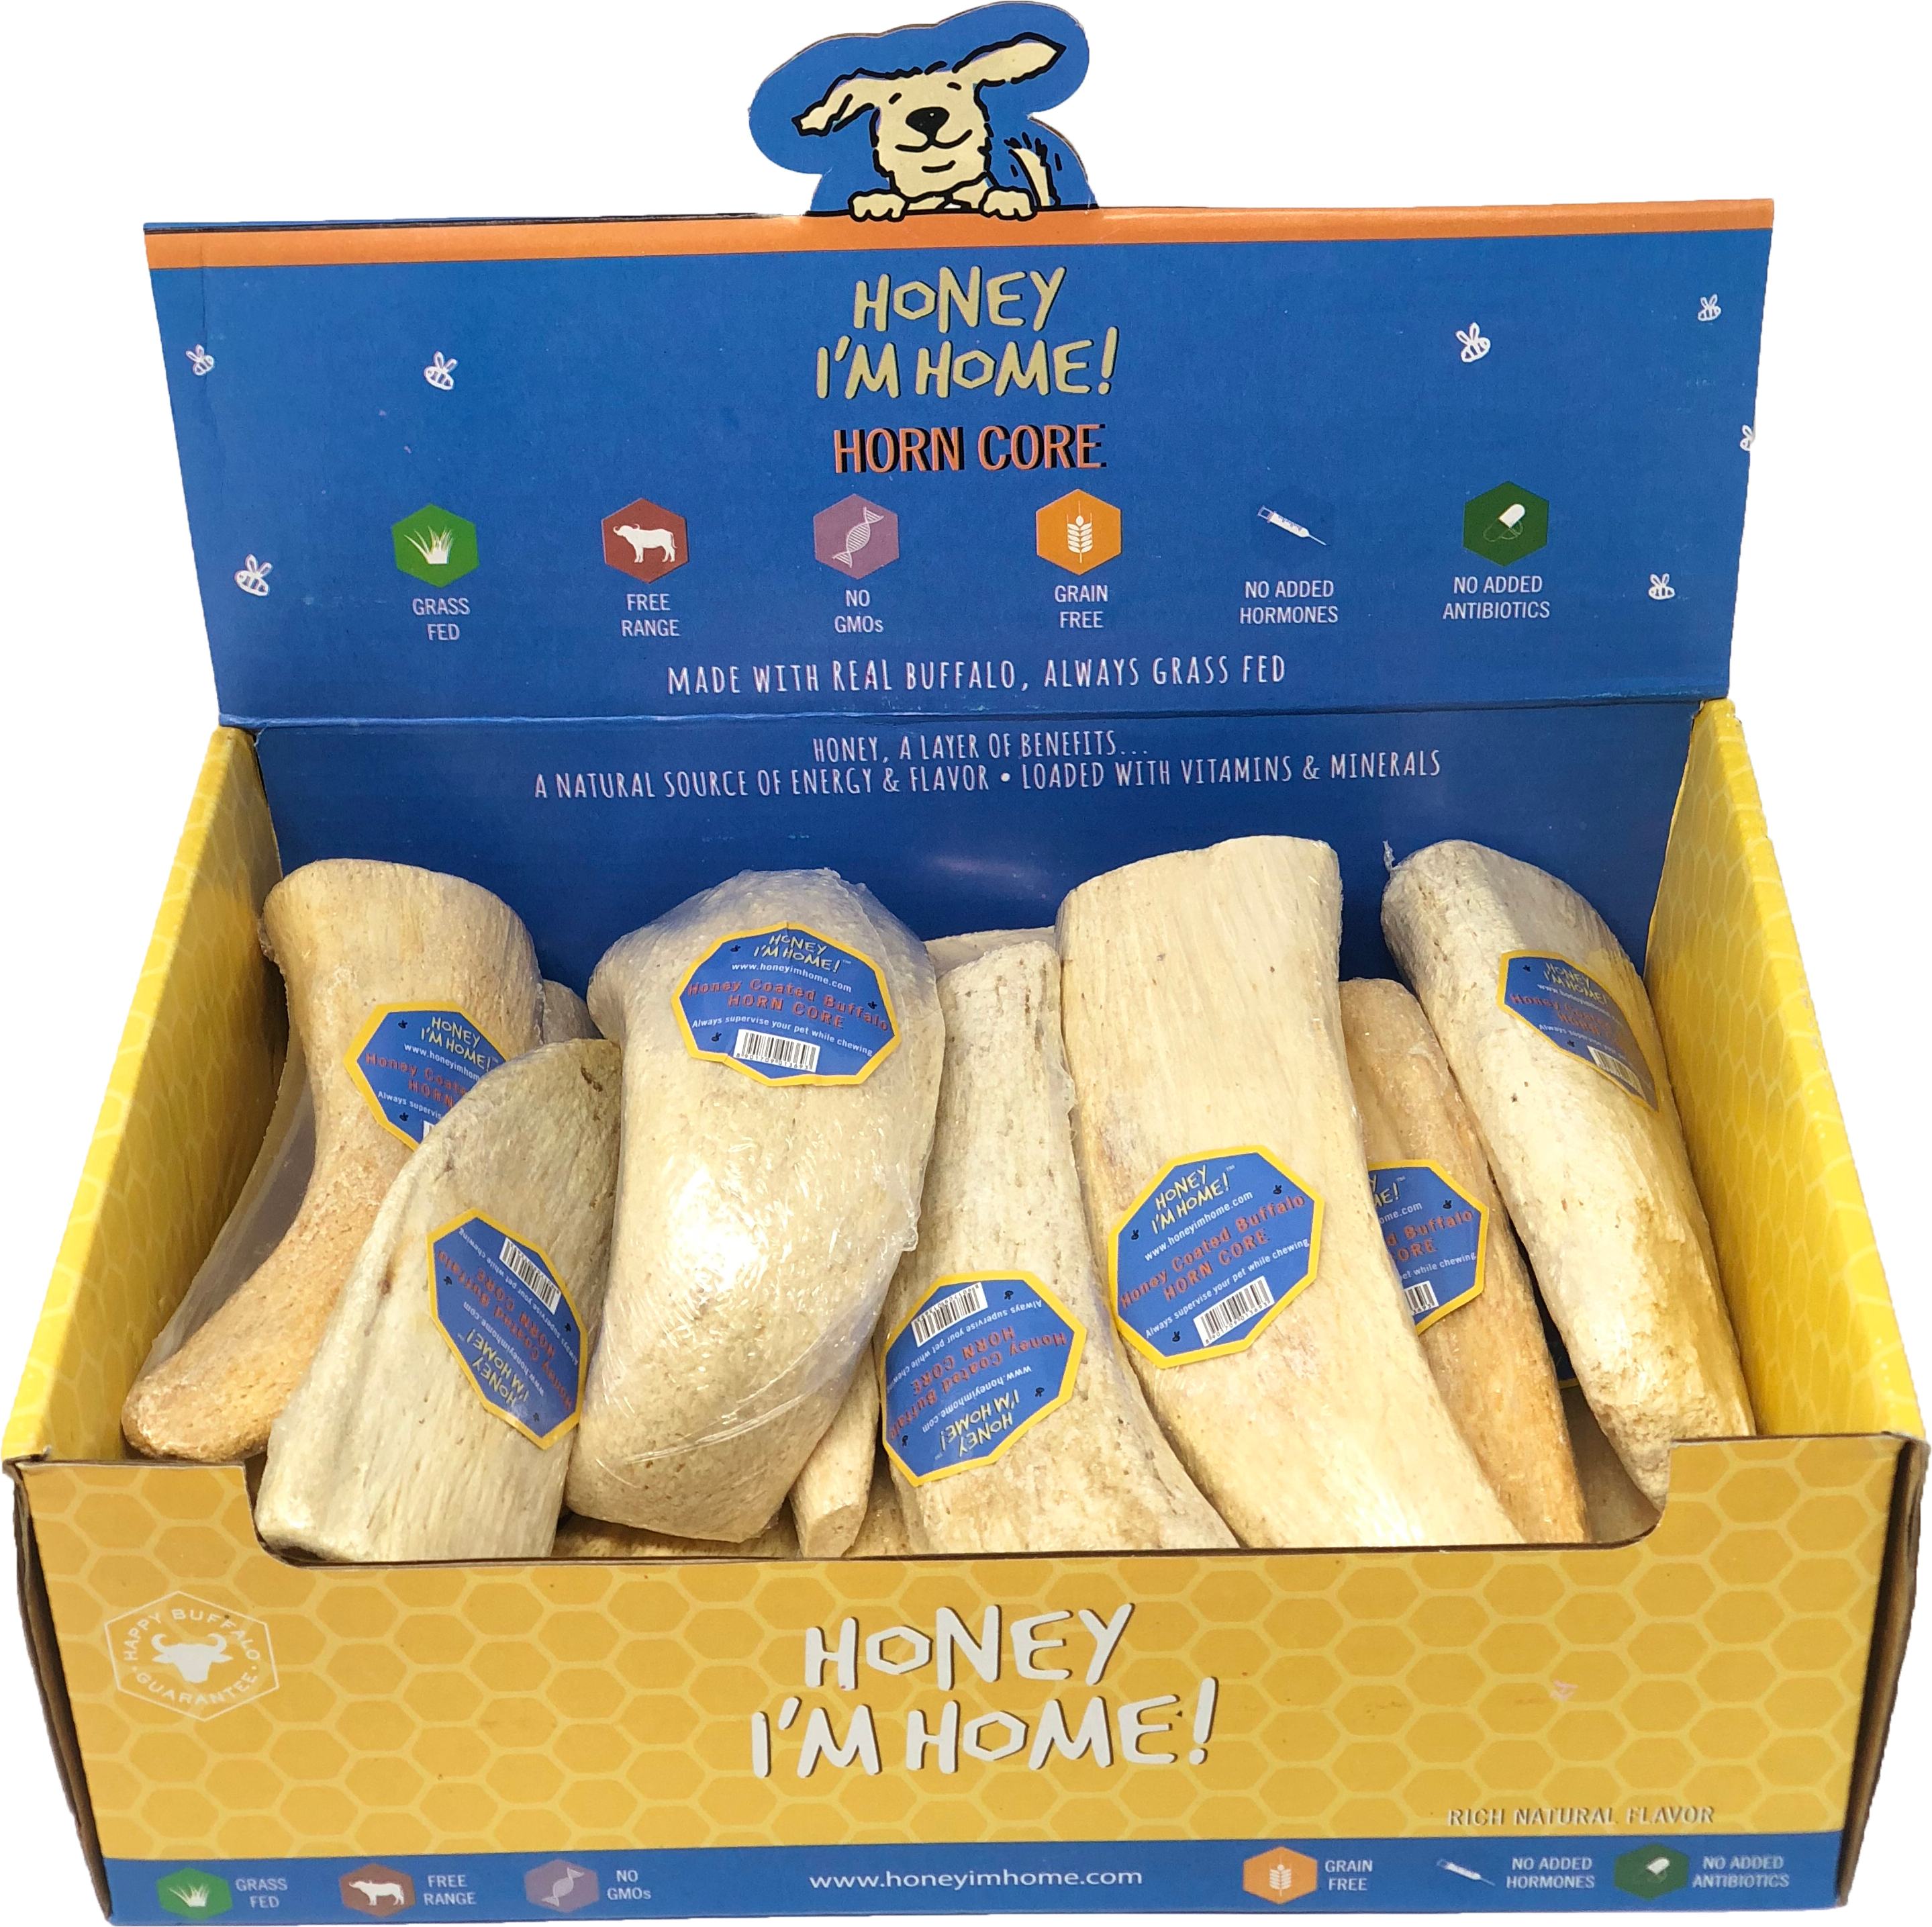 Honey I'm Home Natural Honey Coated Buffalo Horn Core Dog Chews